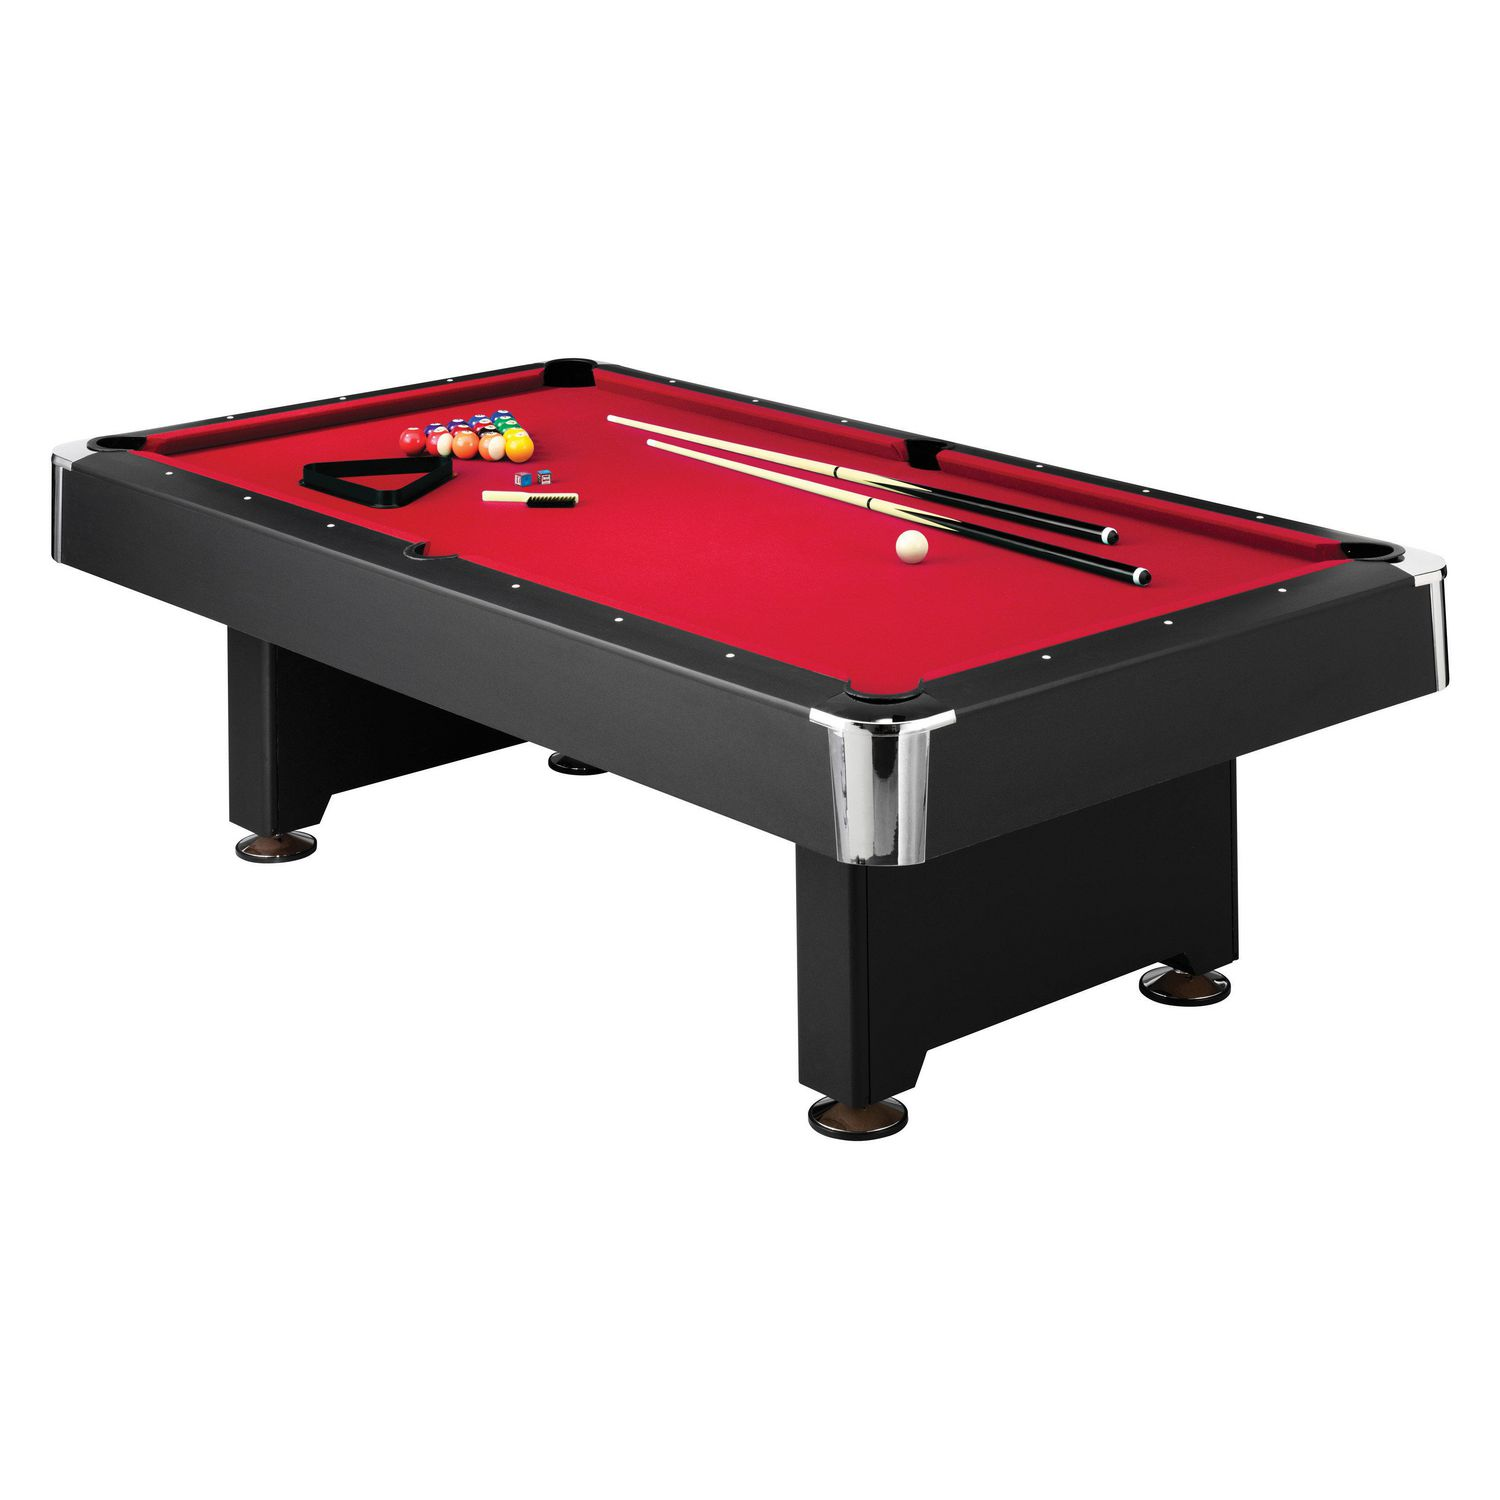 with by table beachcomber free indoor billiard harvil complete pool inches image